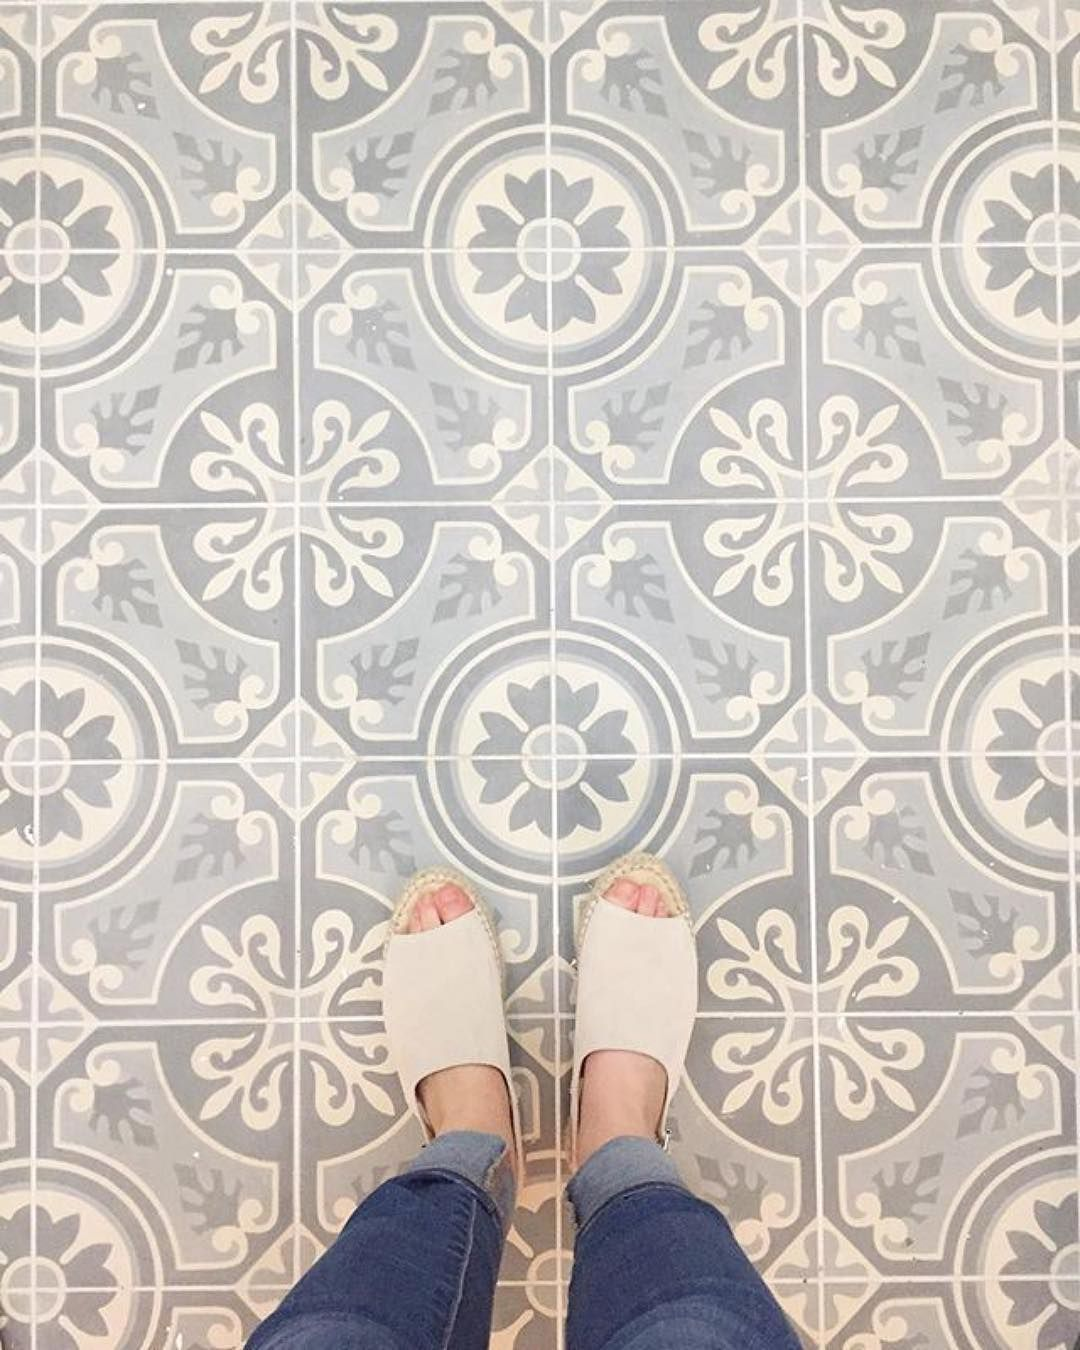 Pin by Mary Zmuidzinas on Tile Love in 2019 | Tiles